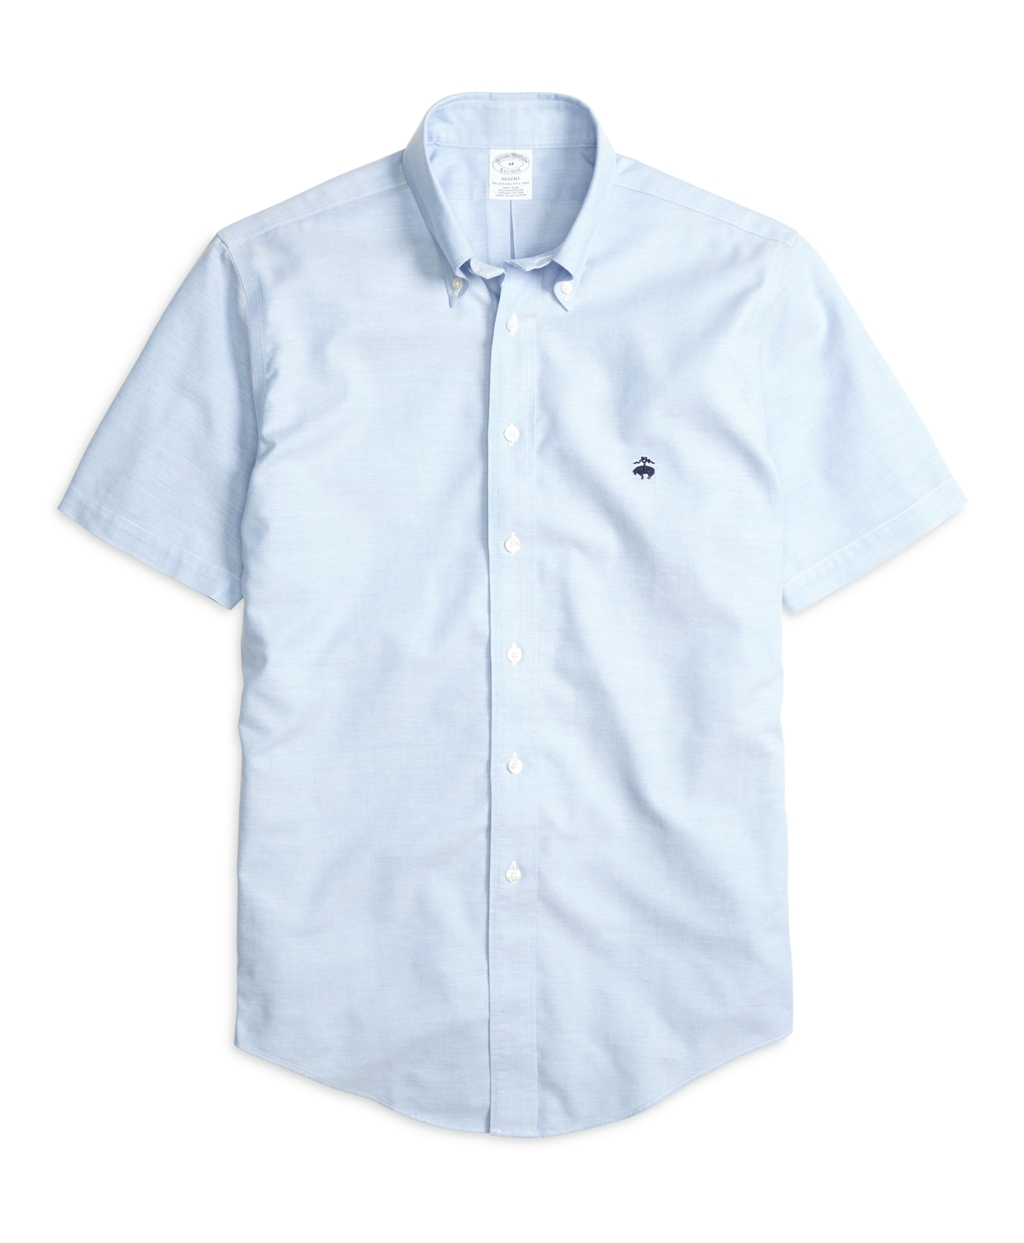 Lyst brooks brothers non iron madison fit oxford short for Brooks brothers non iron shirts review